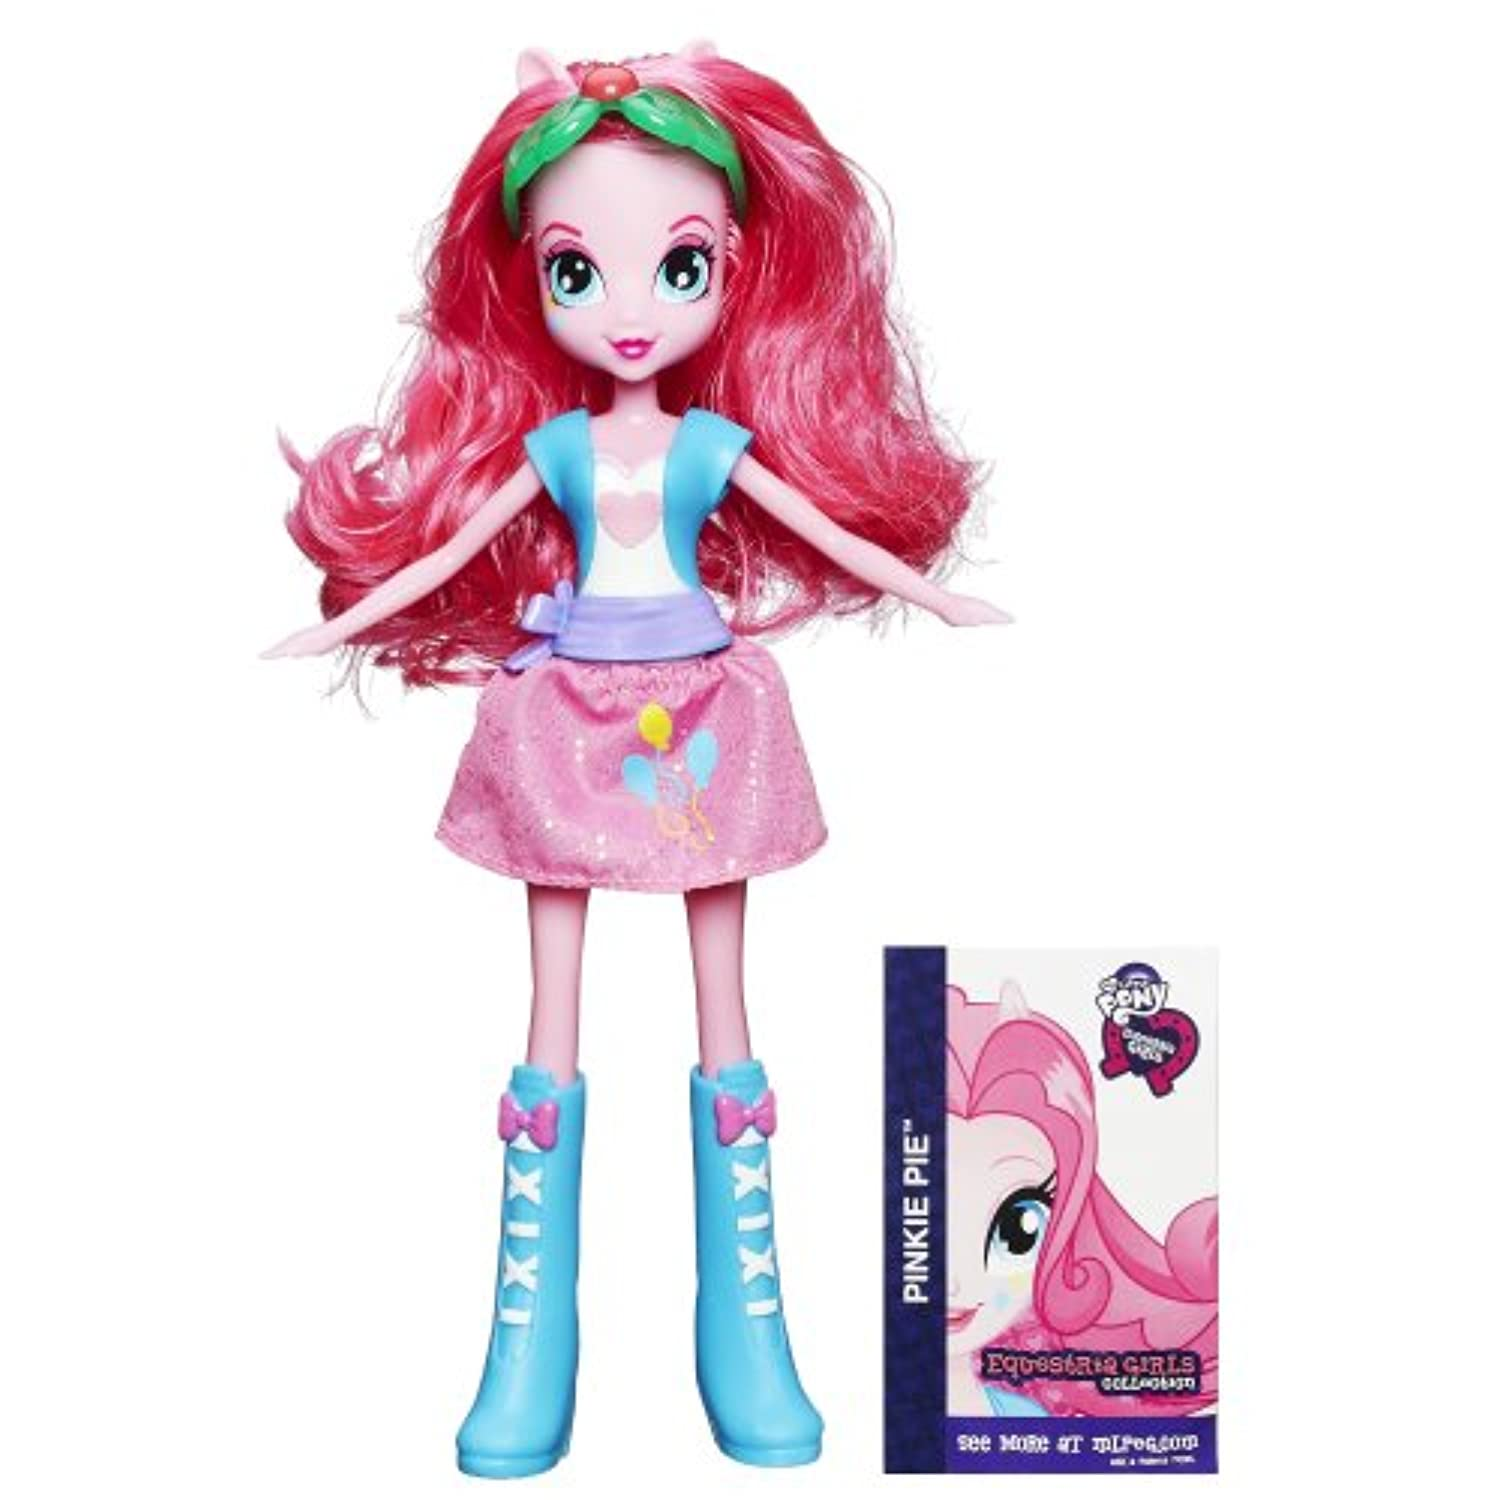 My Little Pony Equestria Girls Collection Pinkie Pie Doll by My Little Pony [並行輸入品]